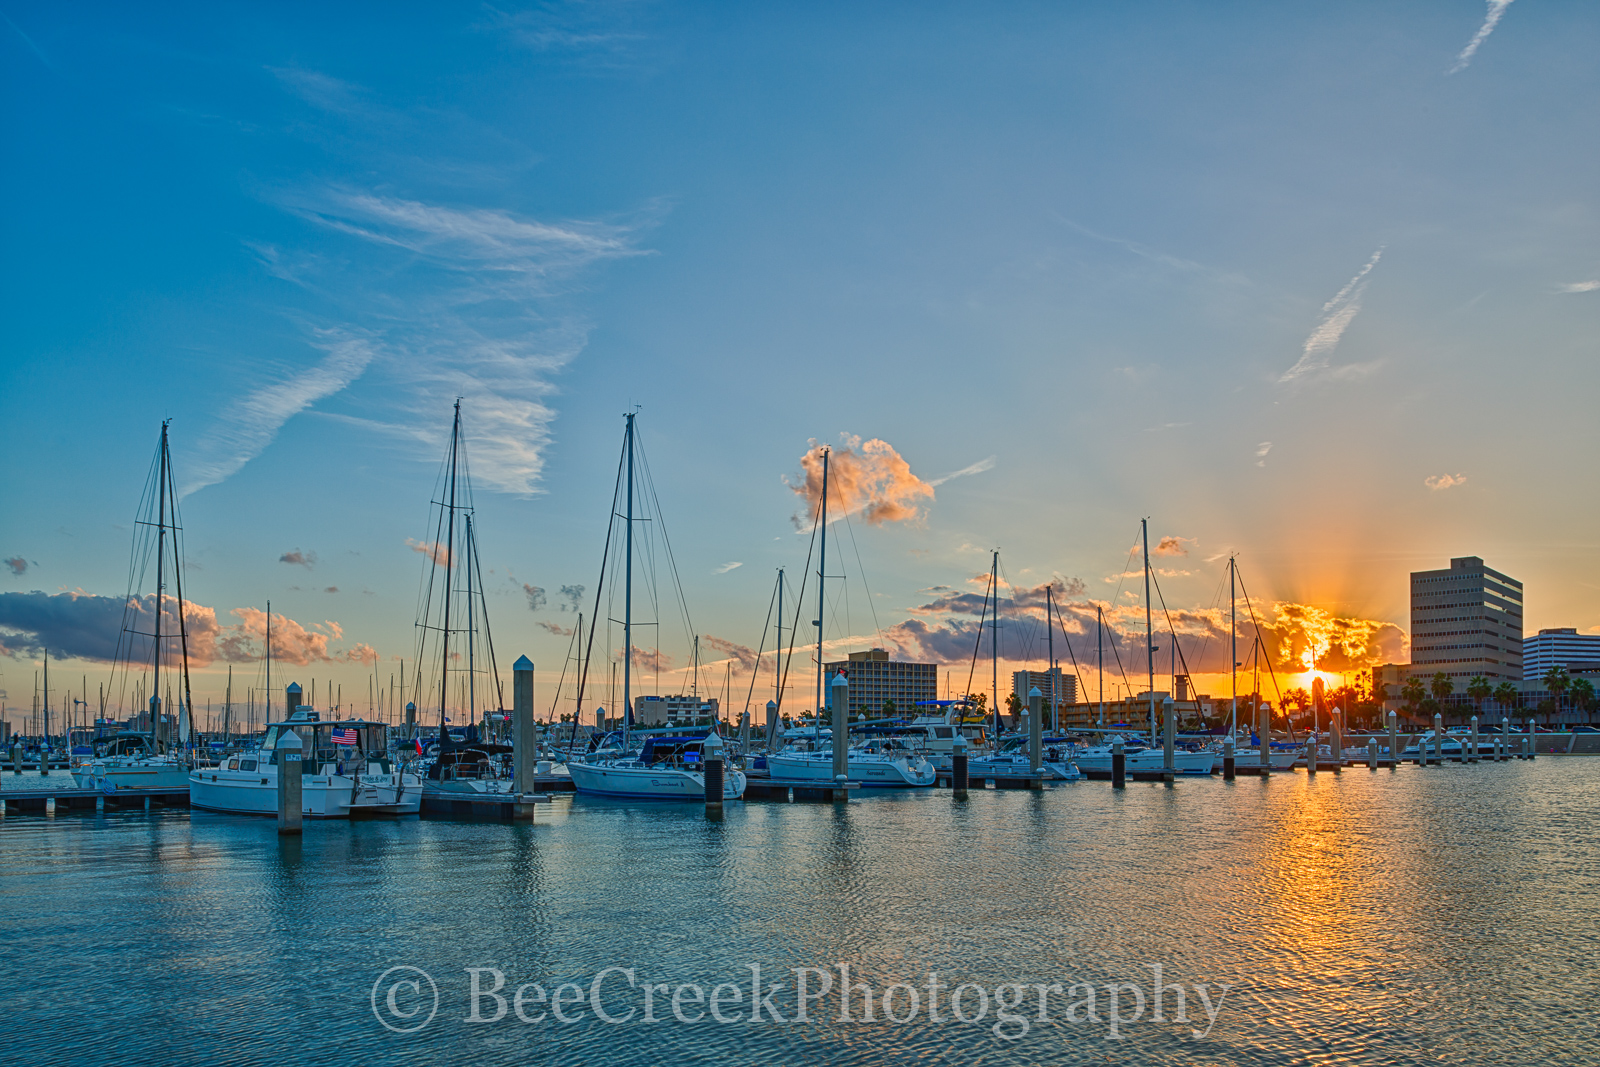 Corpus Christi sunset, Texas coastal, bay, boats, city, colorful sky, docks, marina, ocean, reflections, sailboats, seascape, seawall, water, yachts, photo